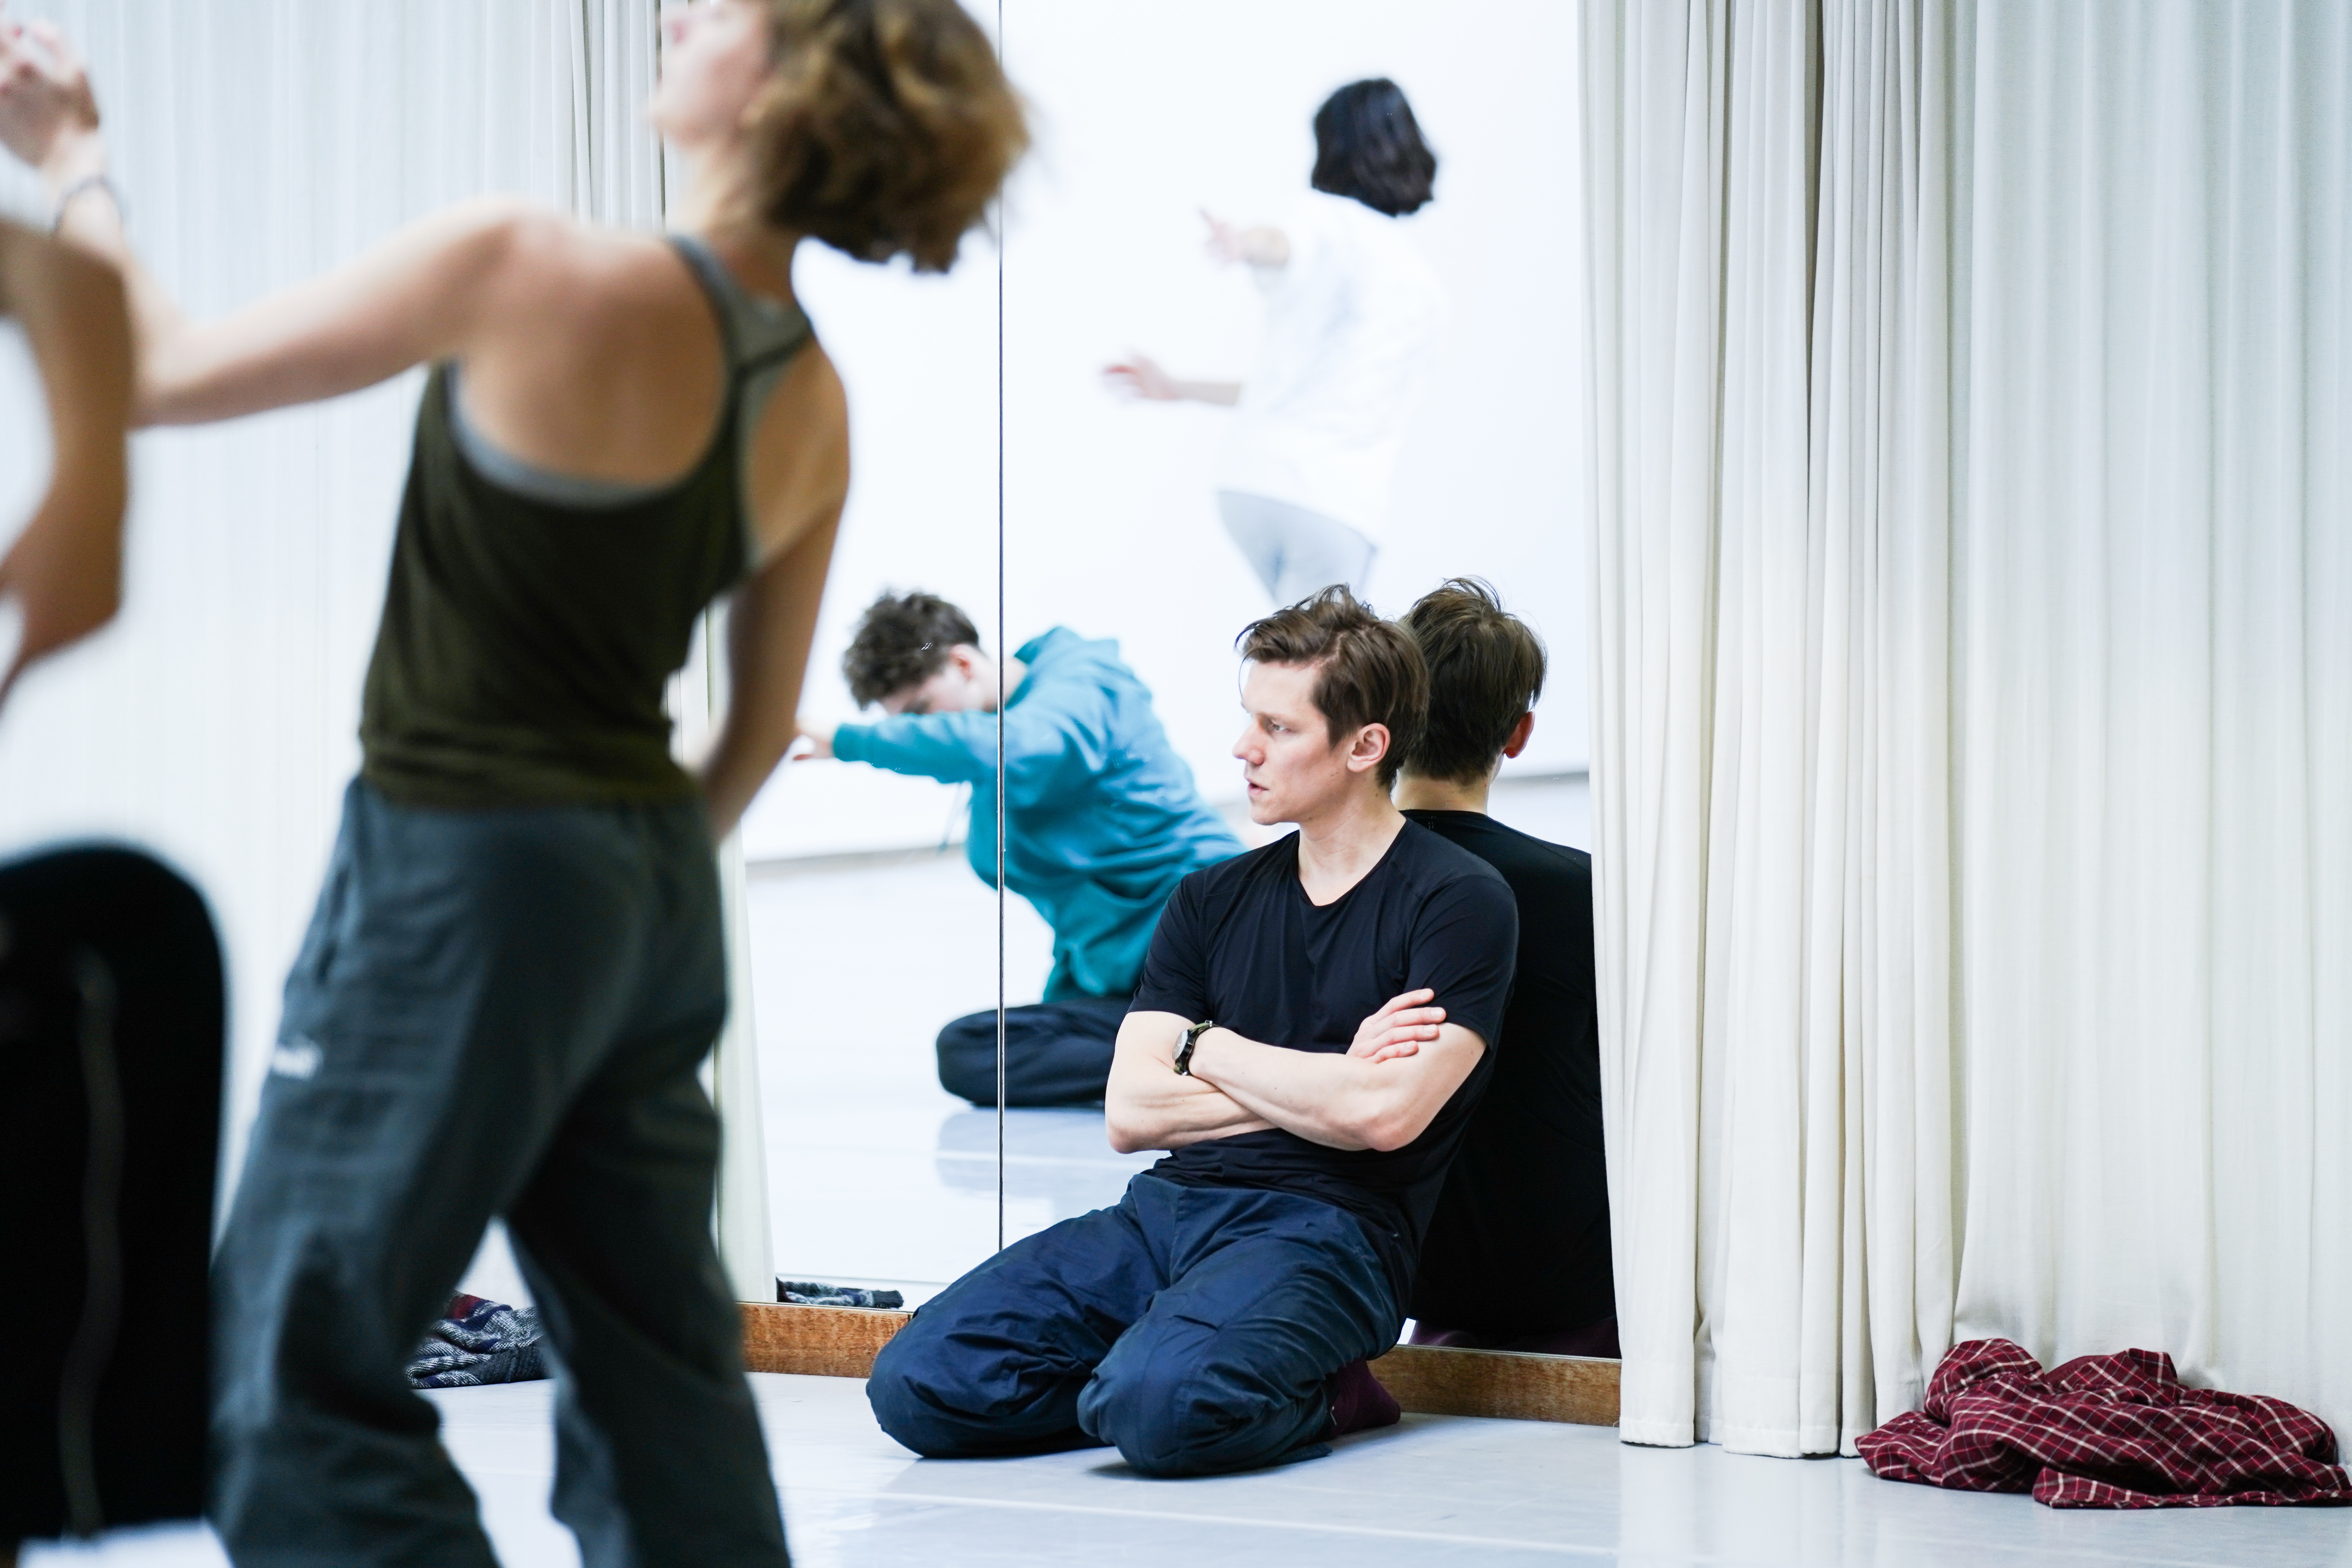 2020 W. Forsythe with Tilman O'Donnell ©Olympe Tits